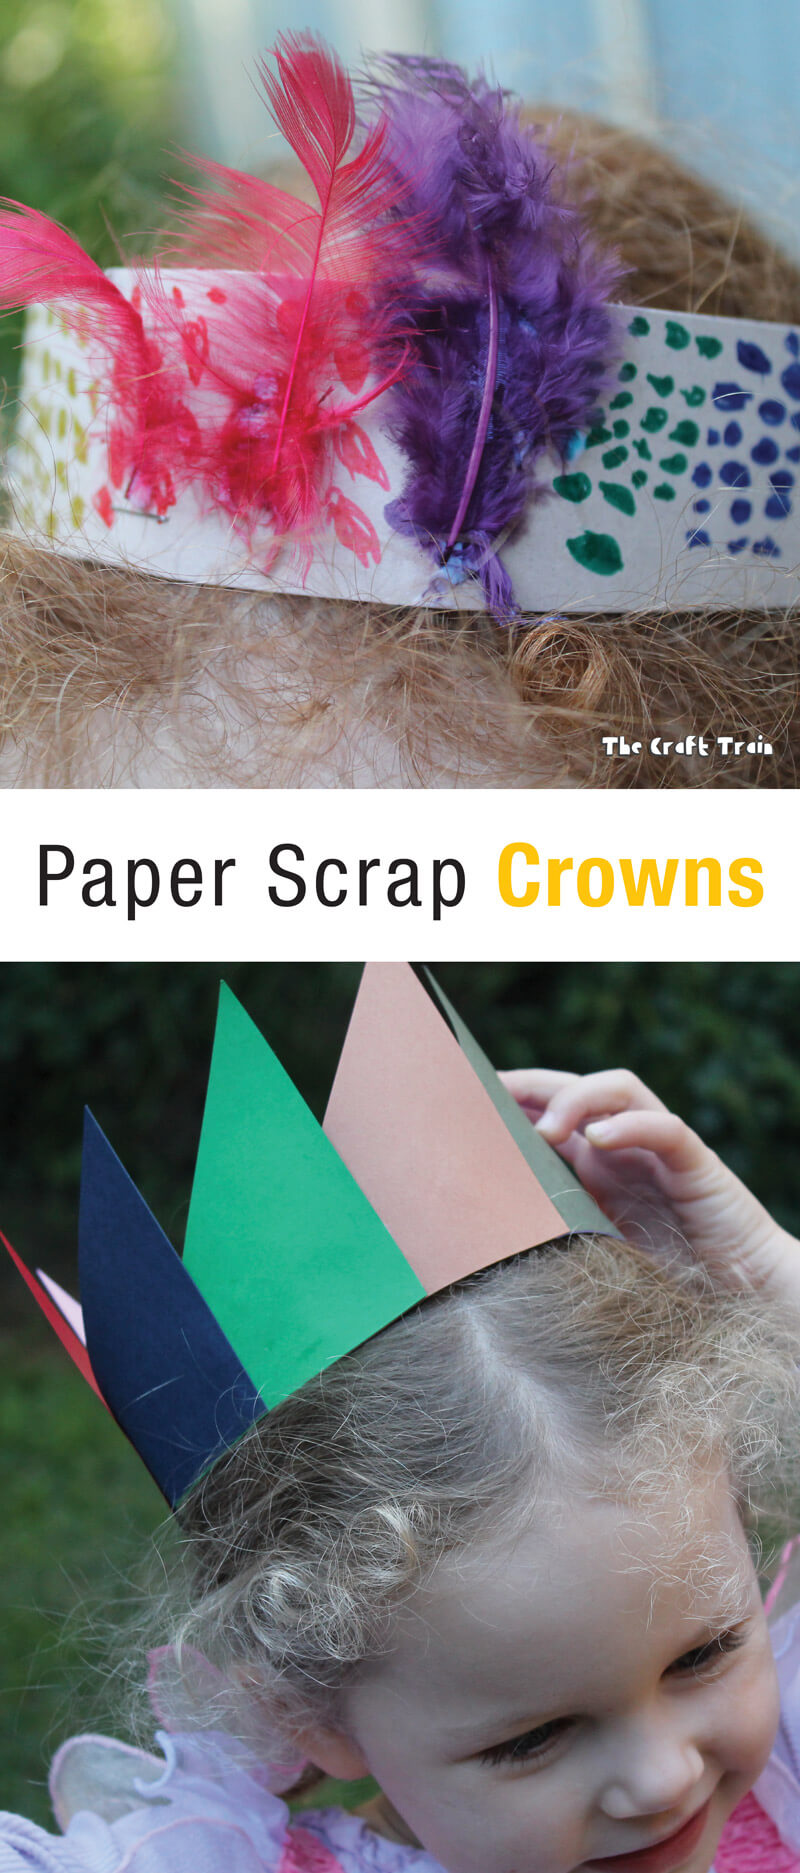 Paper scrap crowns are an easy paper craft idea for preschoolers, perfect for making use of paper off cuts #papercraft #kidscraft #papercrown #diycrown #constructionpaper